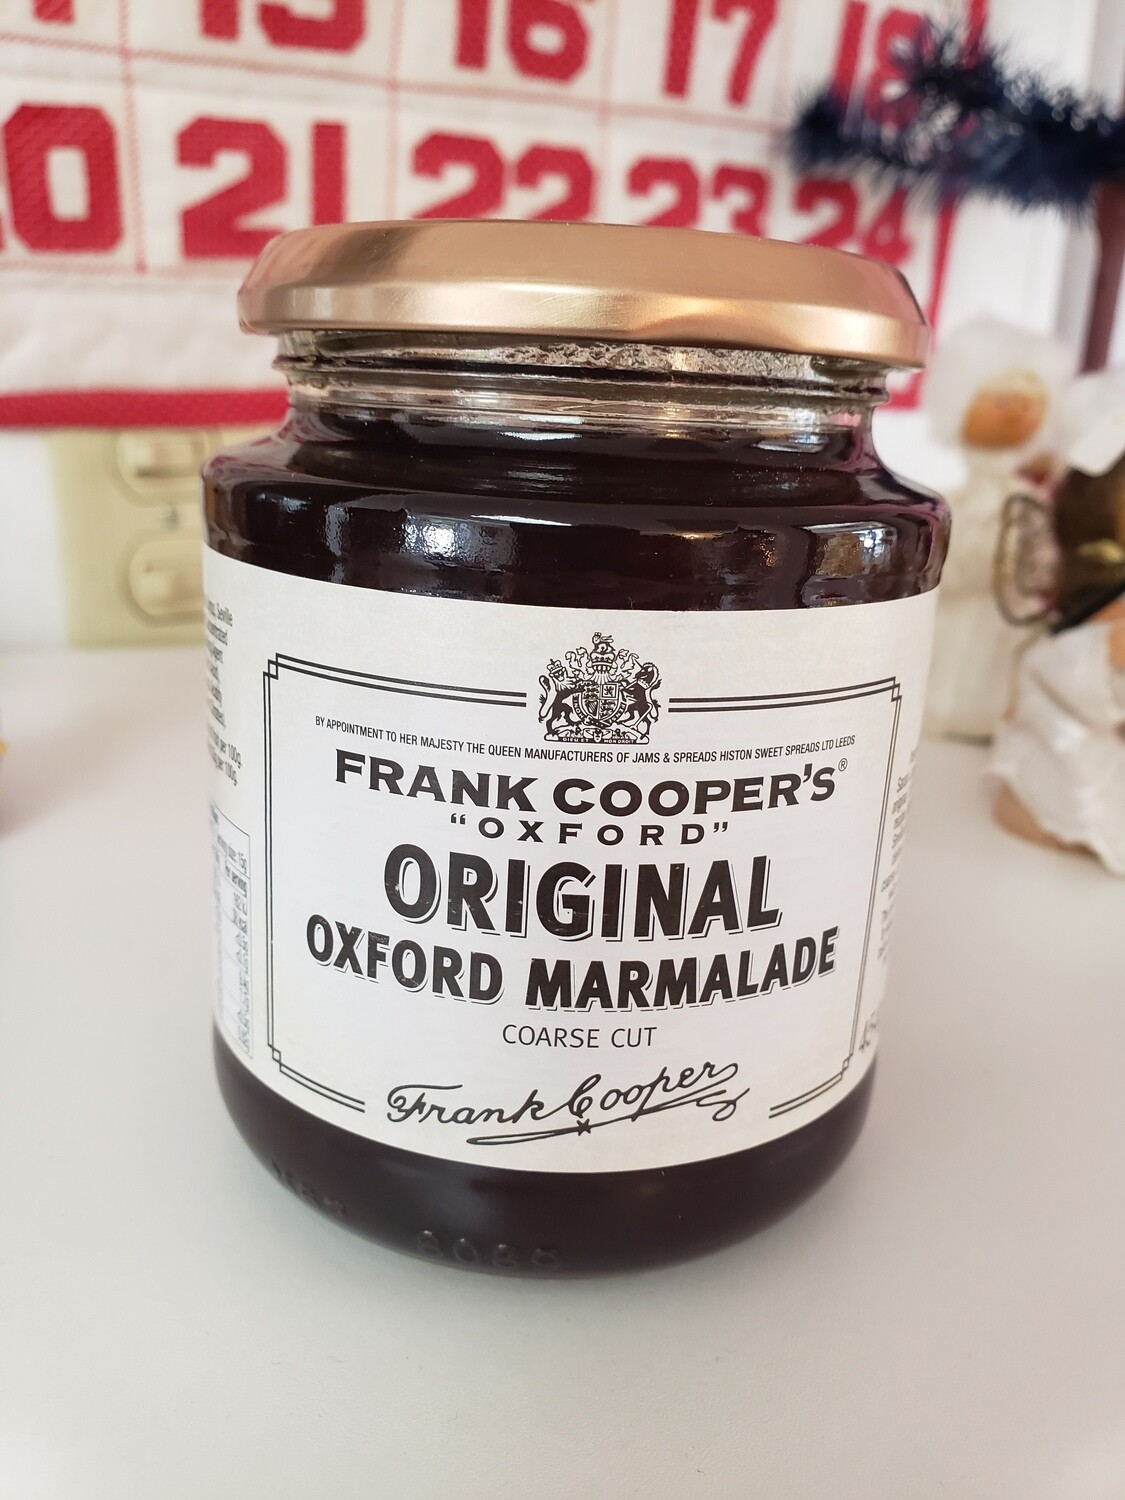 Frank Coopers Marmalade